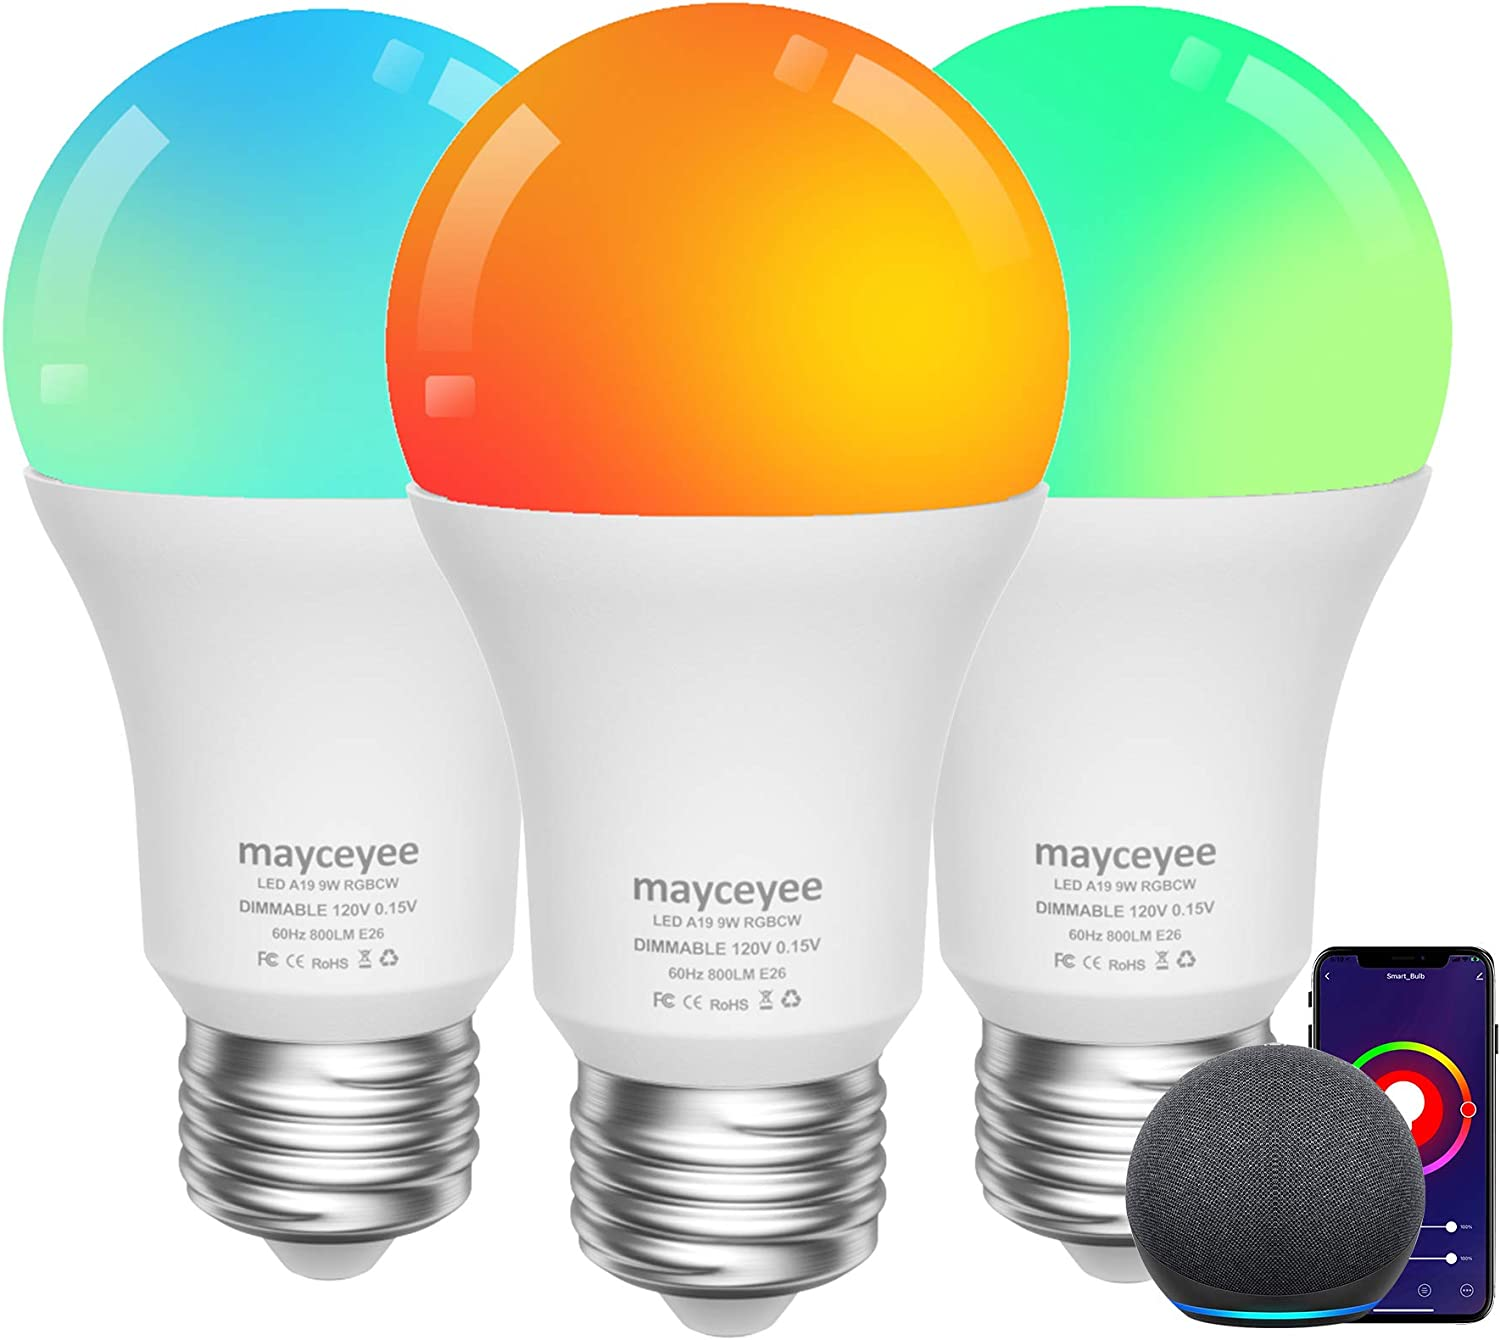 mayceyee Smart WiFi Light Bulb with E26 Base, LED RGBCW Color Changing, Work with Alexa and Google Home Assistant, A19 Multicolor Light for Home Decor, Stage and Party (3)